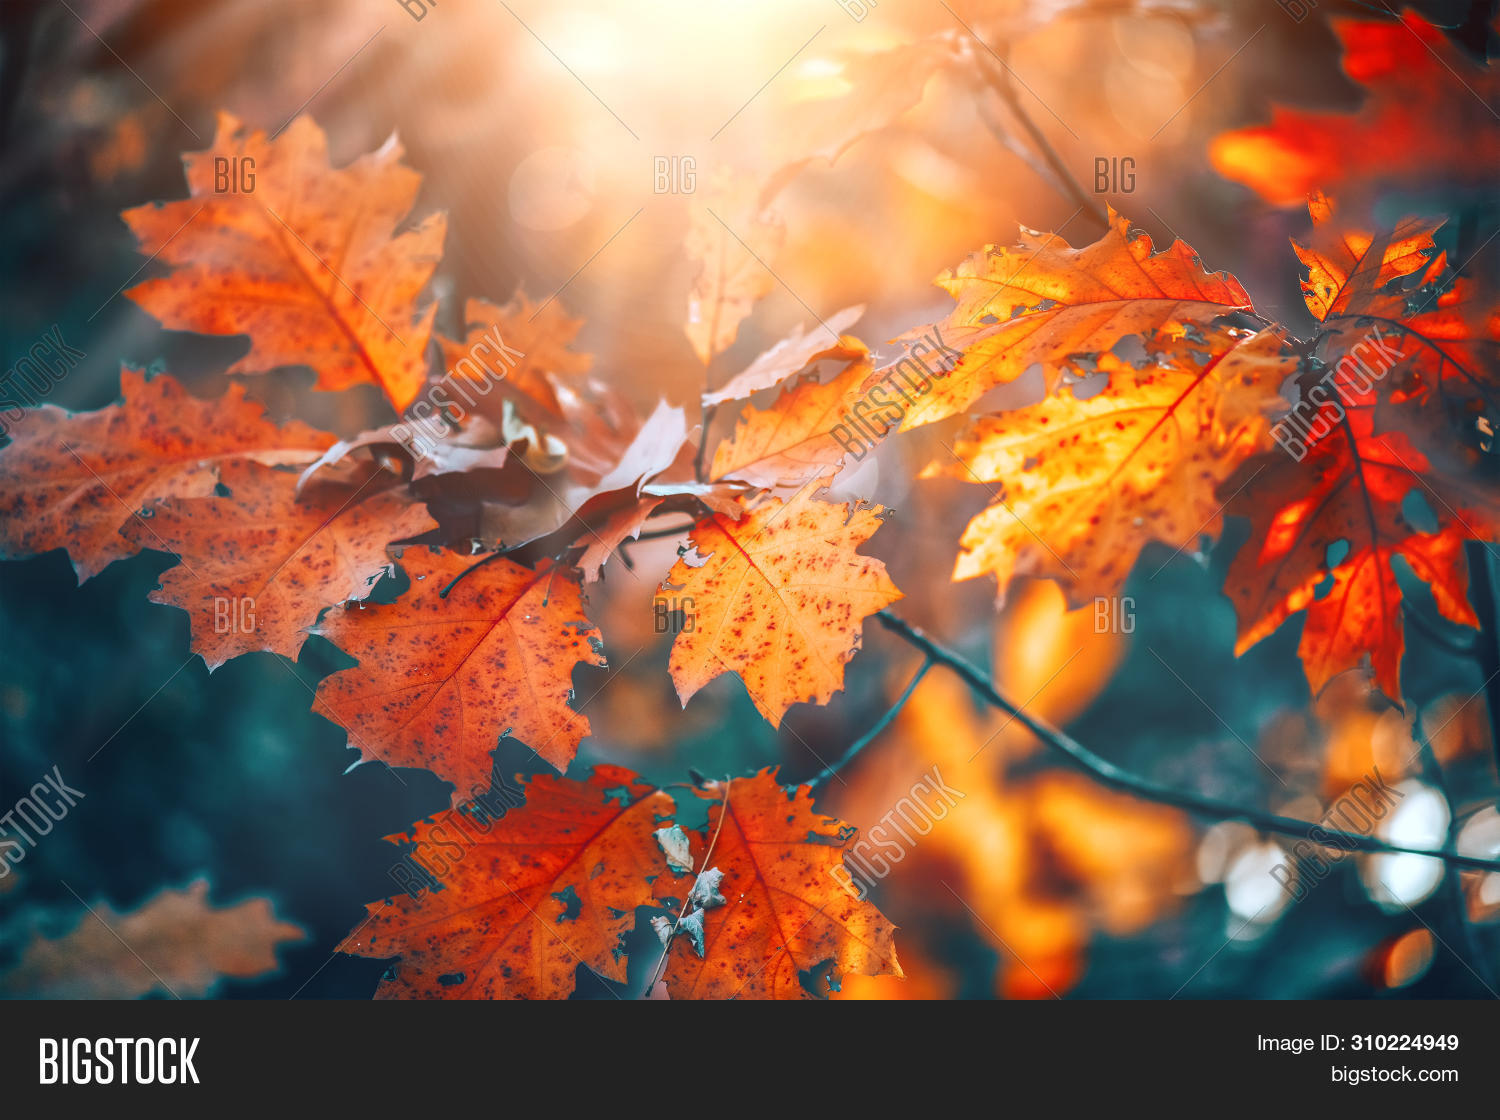 autumn,autumn background,autumn leaves,autumnal,background,backlit,beautiful,beauty,bokeh,branch,bright,change,color,colorful,colors,colour,colourful,concept,fall,falling leaves,flare,foliage,forest,landscape,leaf,leaves,light,lush,maple,natural,nature,november,oak,october,orange,outdoor,park,plant,red,scene,season,sun,sunlight,sunny,tree,trees,vibrant,vivid,woods,yellow